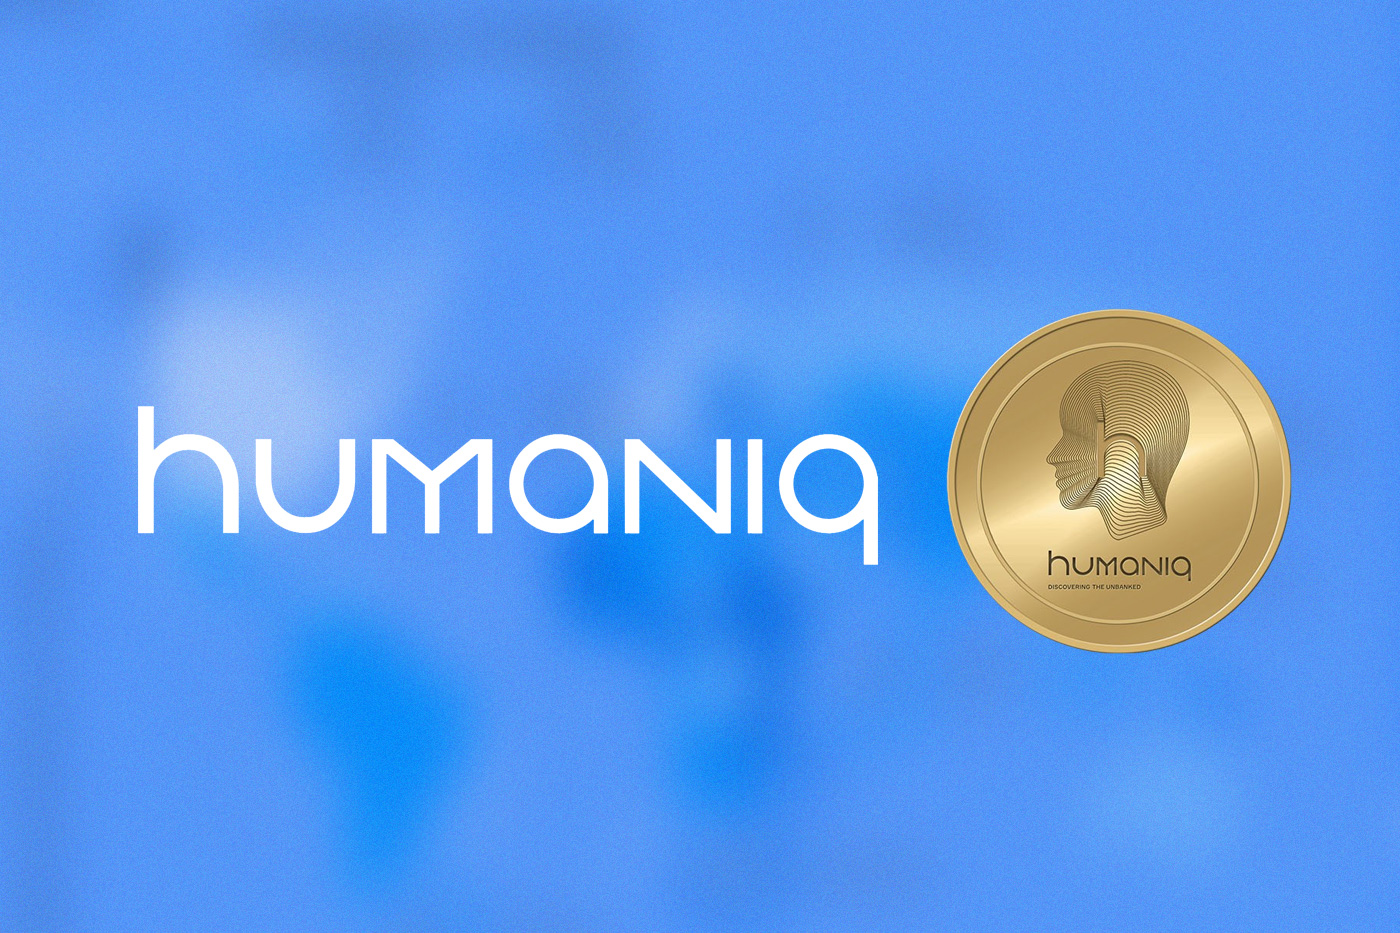 Humaniq at Unbound London - Cumul.io